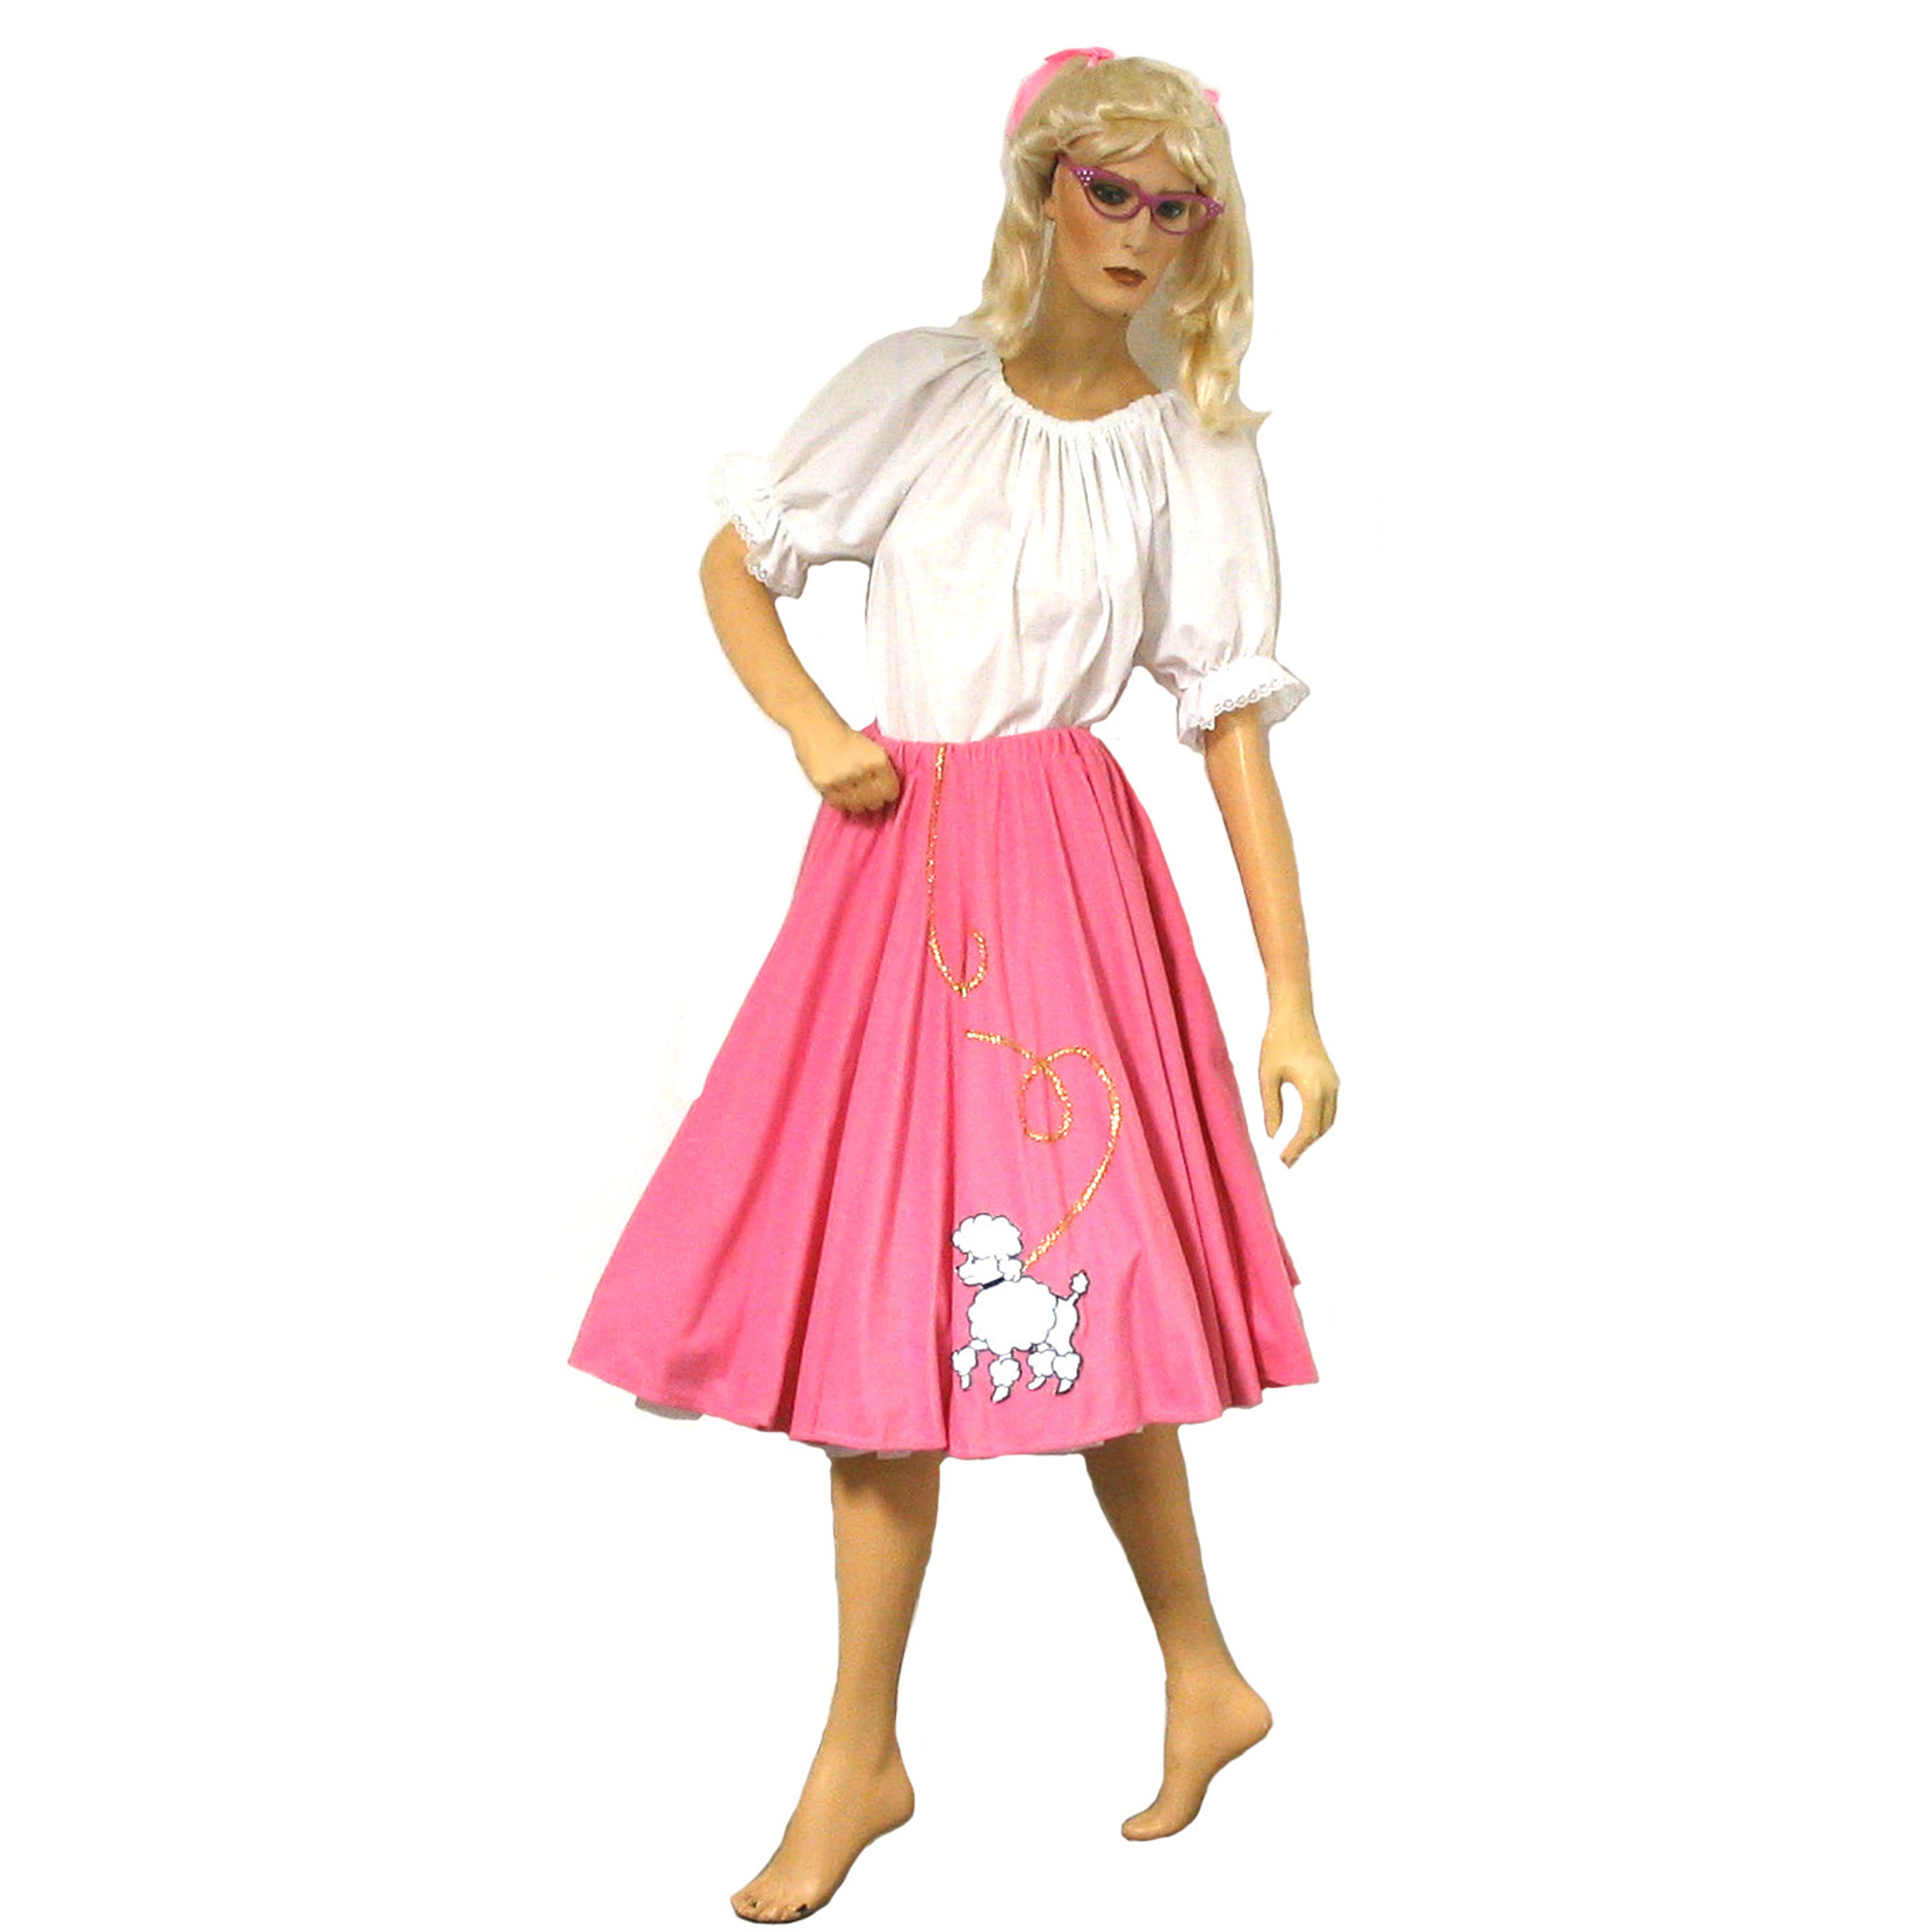 df2e23a1c5038 Plus Size Poodle Skirt Outfits